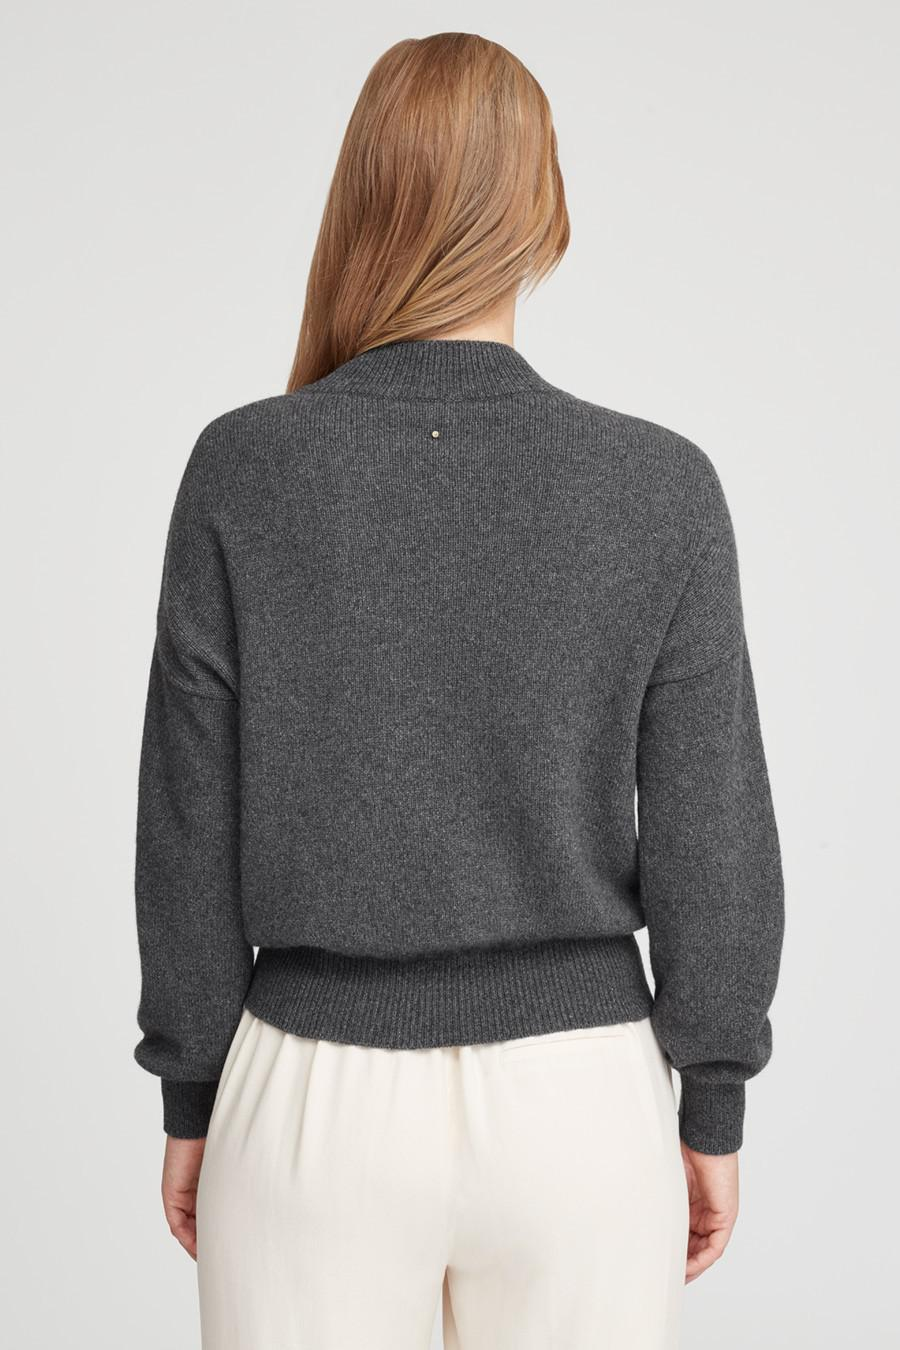 Women's Recycled Mock Neck Sweater in Charcoal | Size: 2